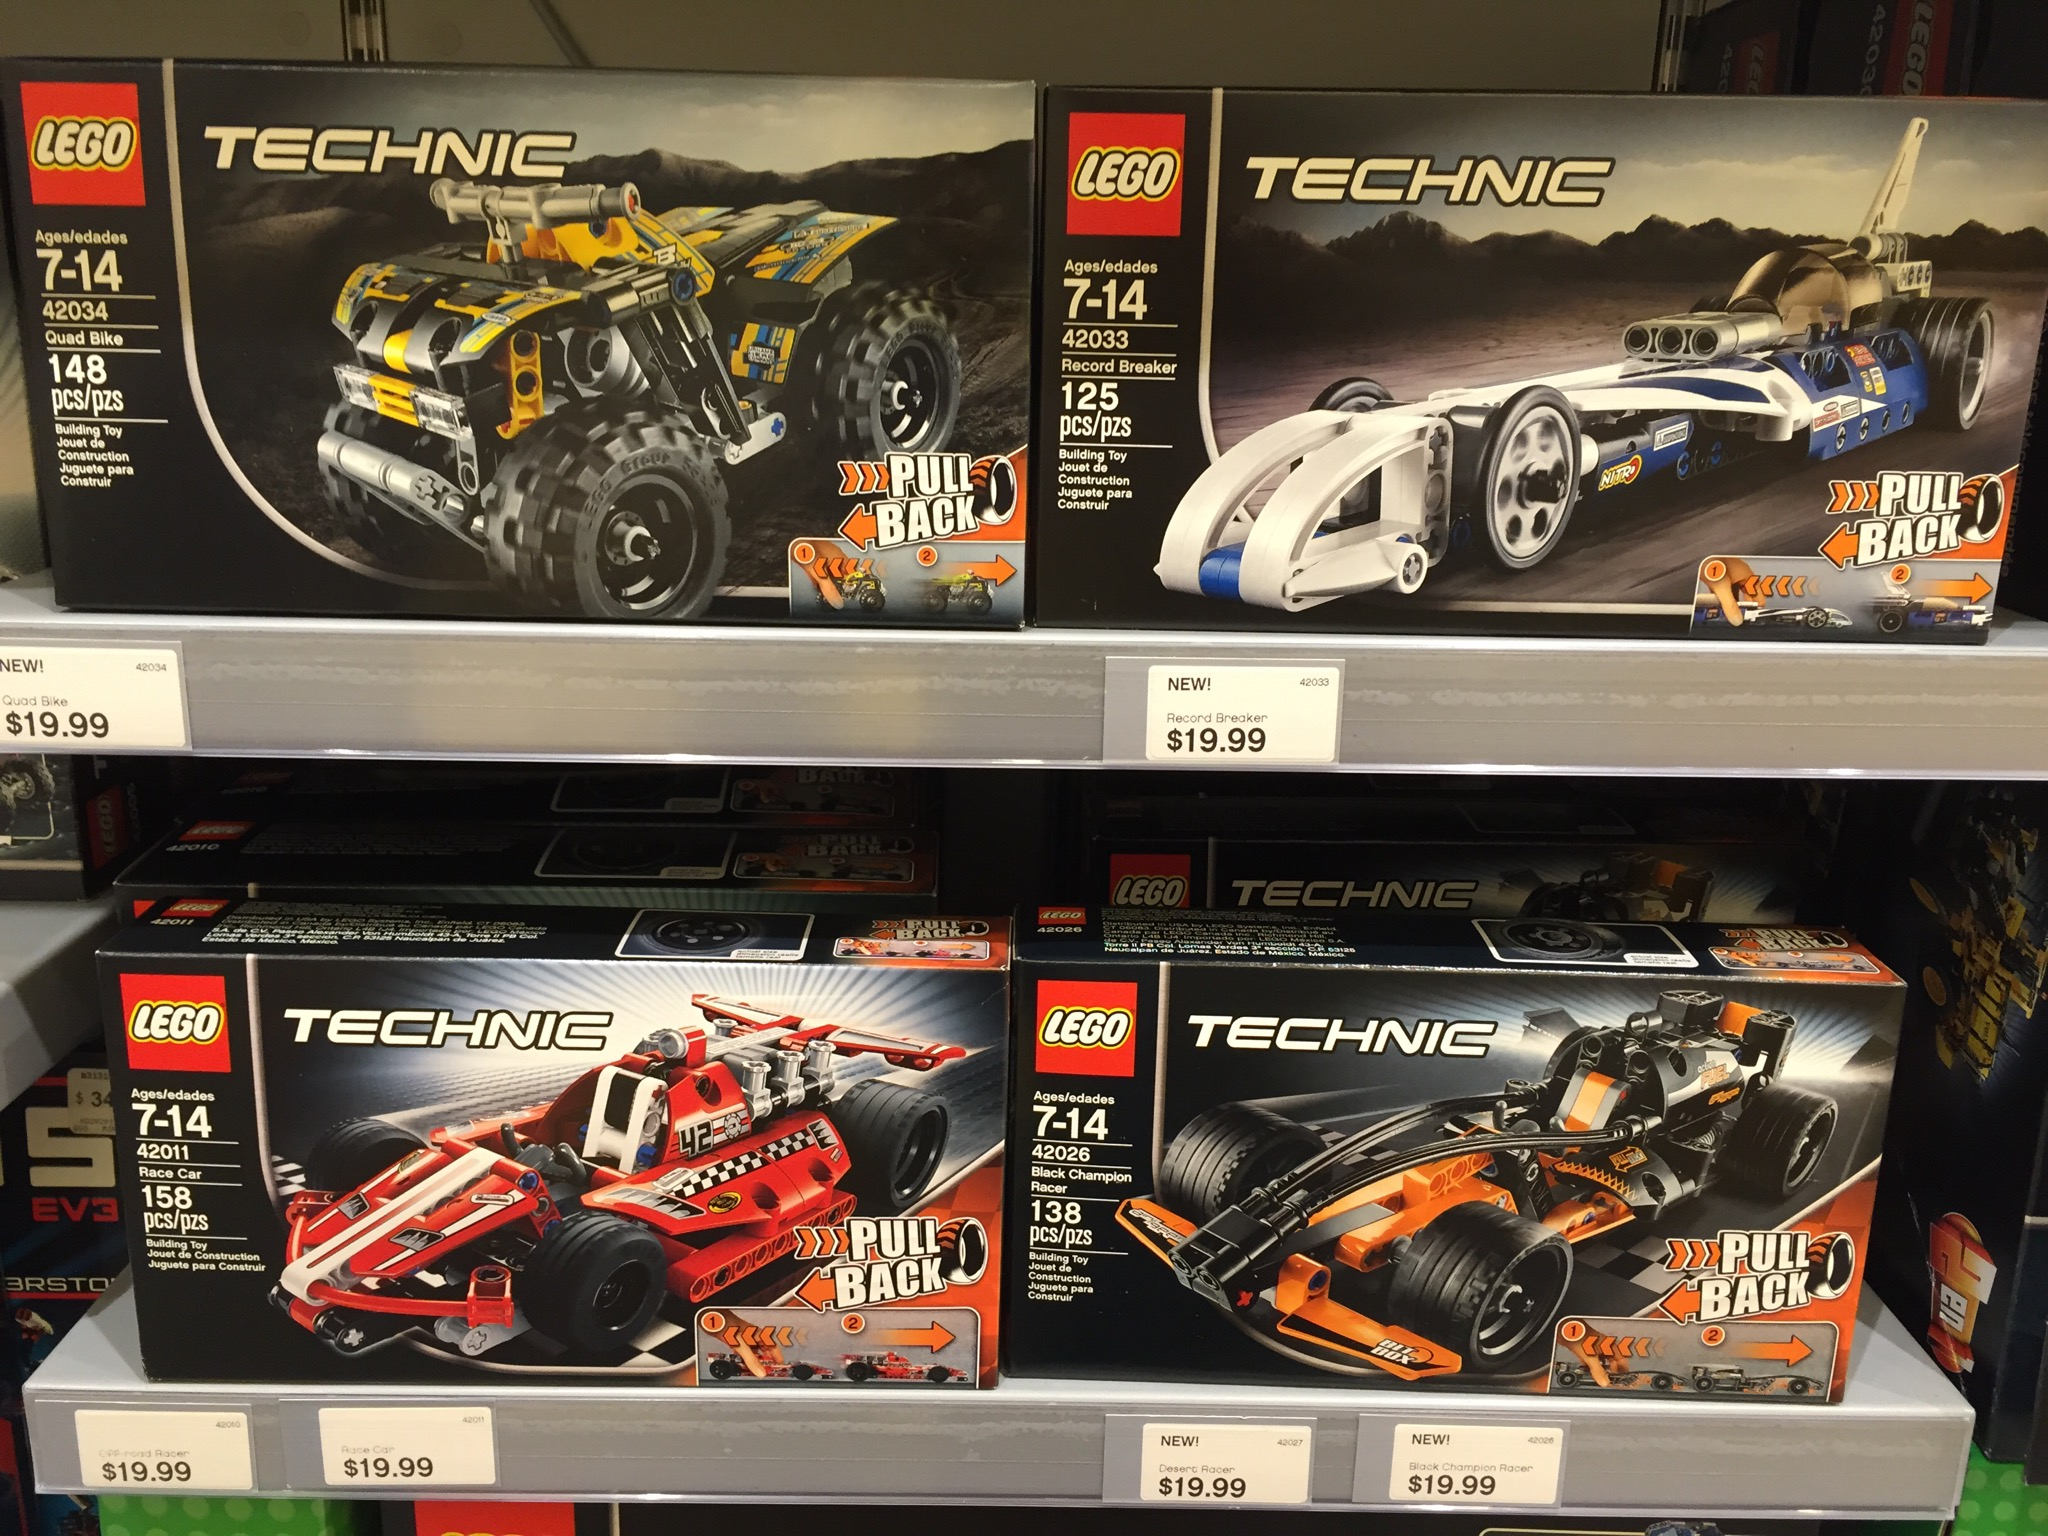 2015 Lego City Creator Technic Sets Released Online Bricks And